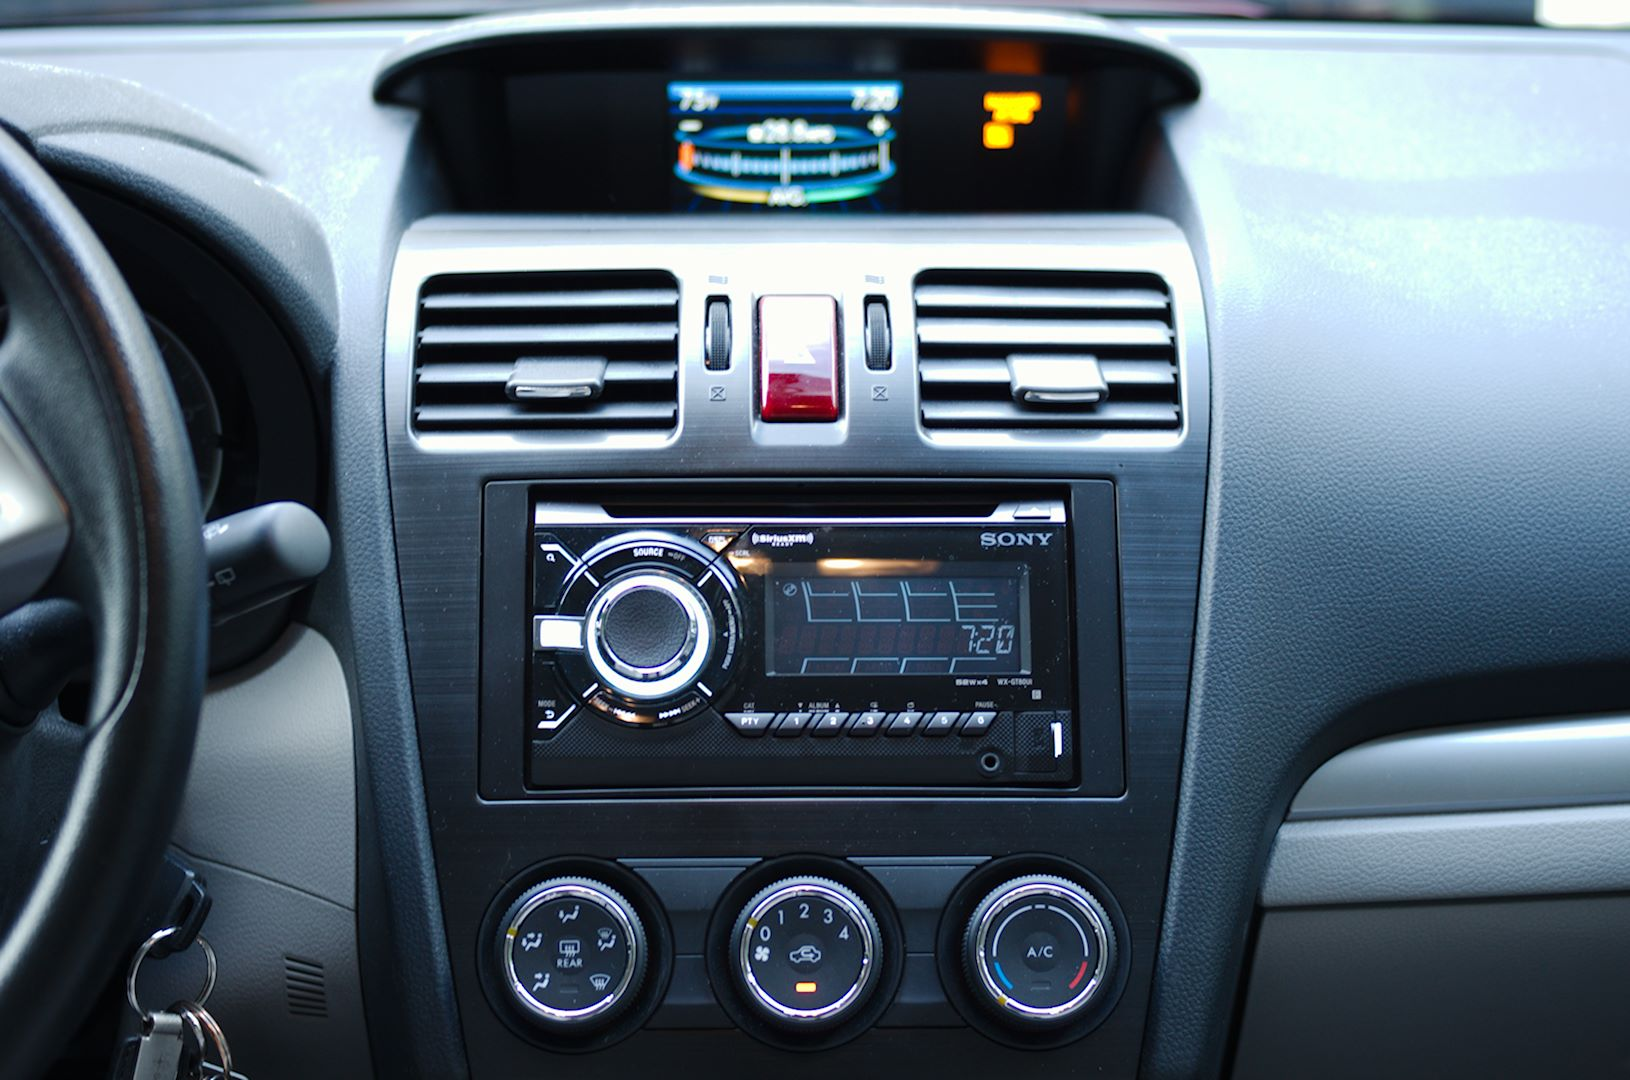 Scosche SU2029B Dash Kit For select 2012-15 Subaru vehicles